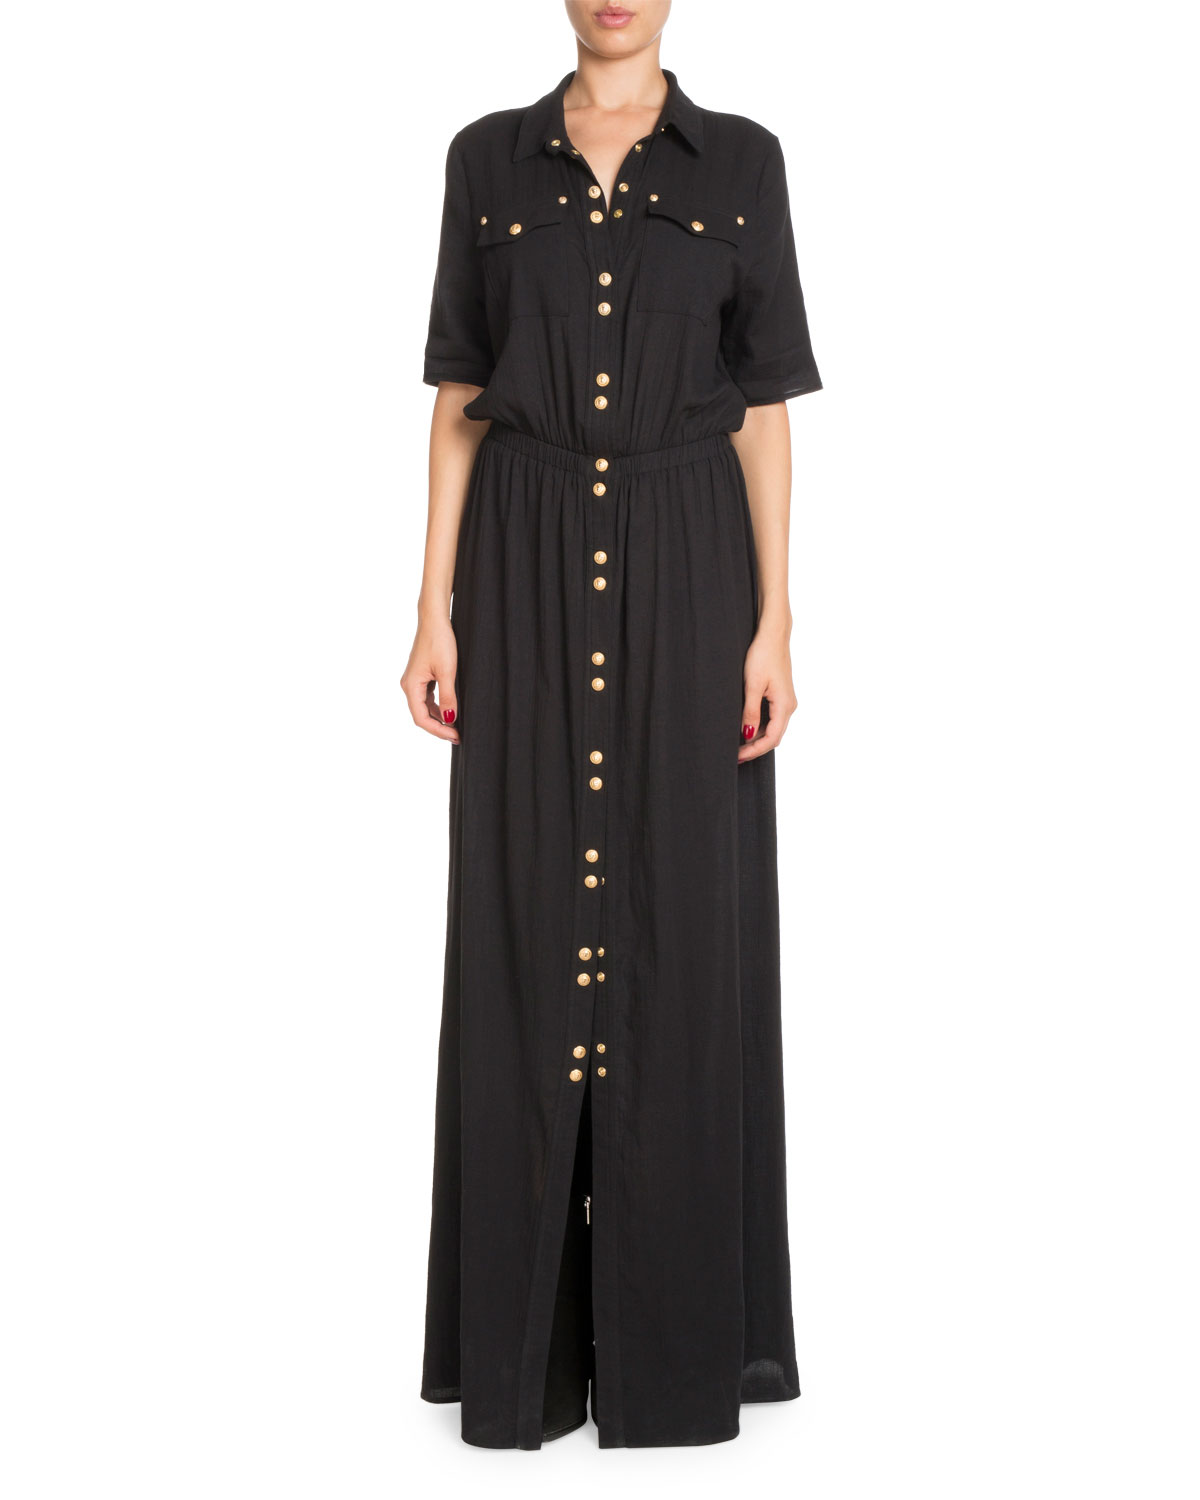 Snap-Front Cotton Shirtdress with Golden Buttons